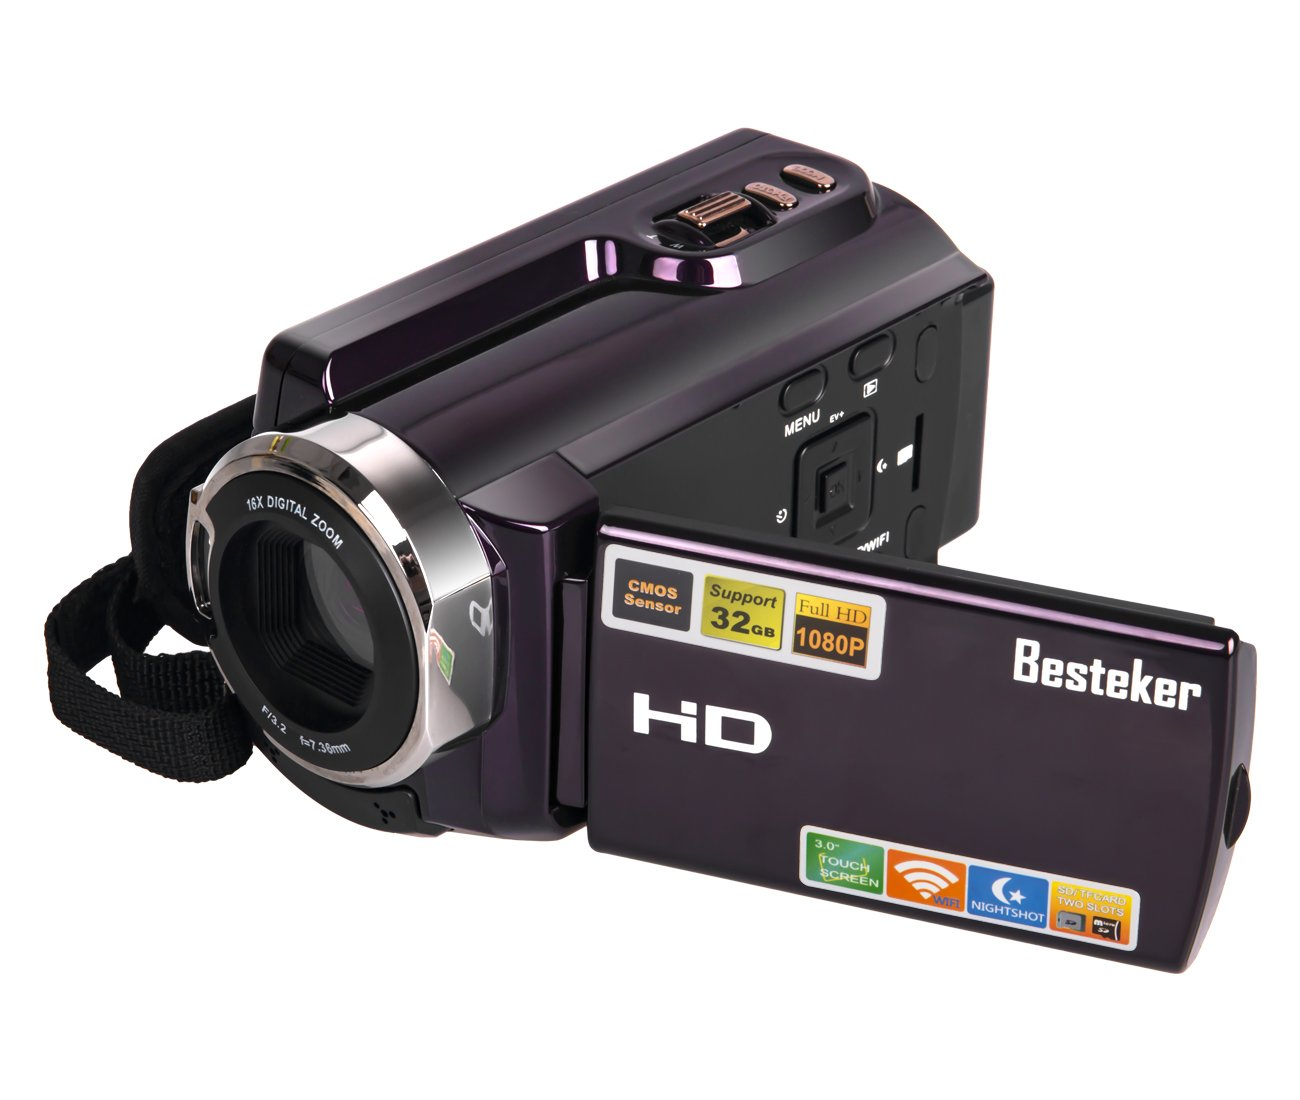 Amazon.com : Video Camcorders, Besteker Portable Digital Video Camera Max  20.0 MP 1080P Camcorder HD Support WIFI and IR 3.0 Inches Touch Screen  Camera ...